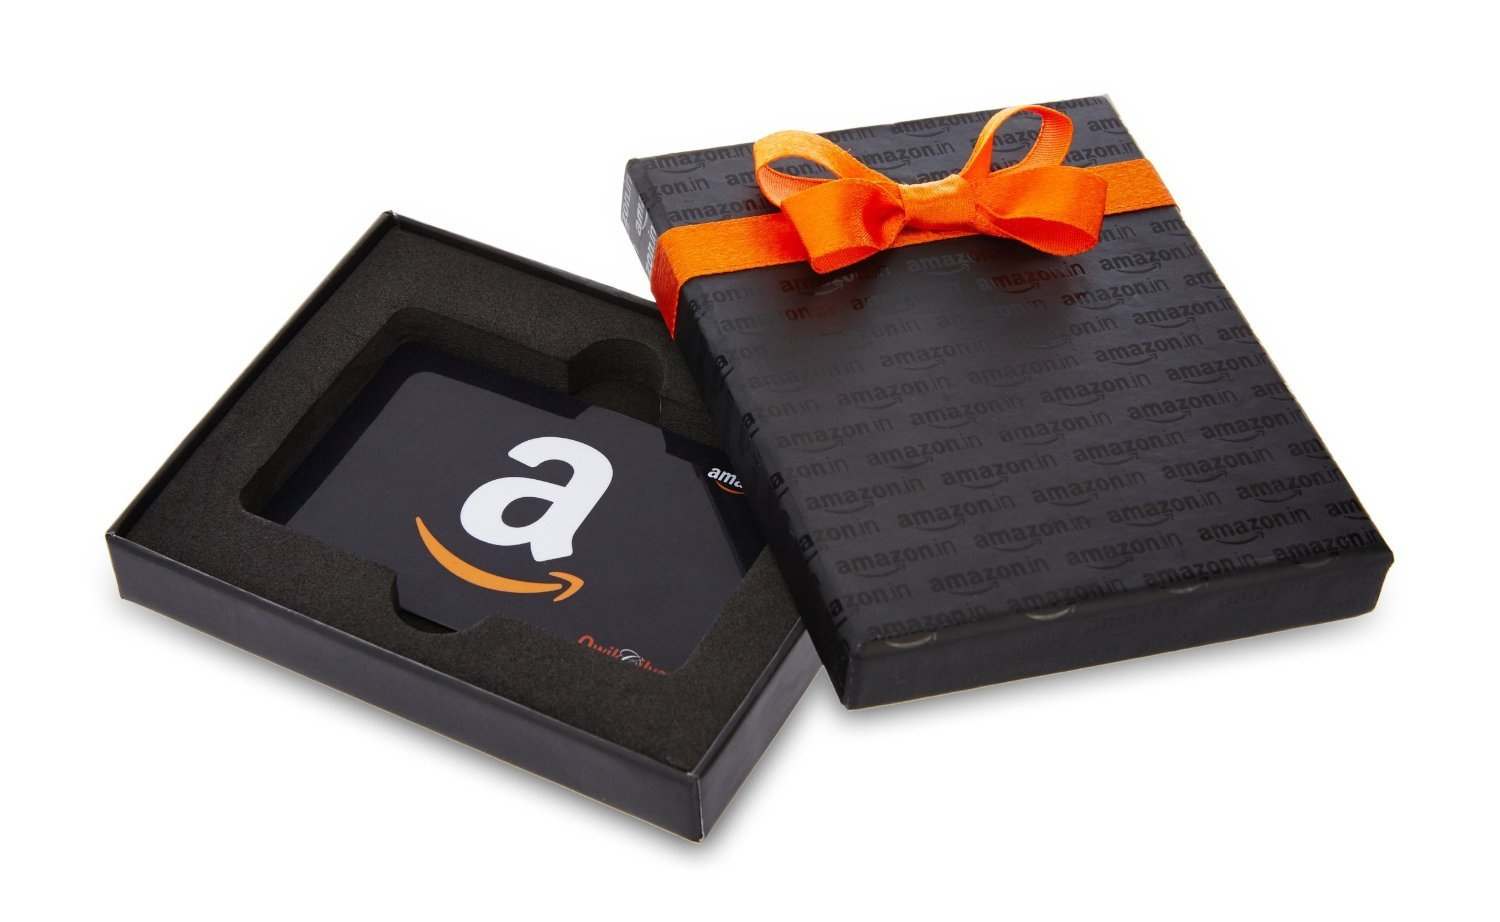 Amazon.in Gift Card in a Black Box